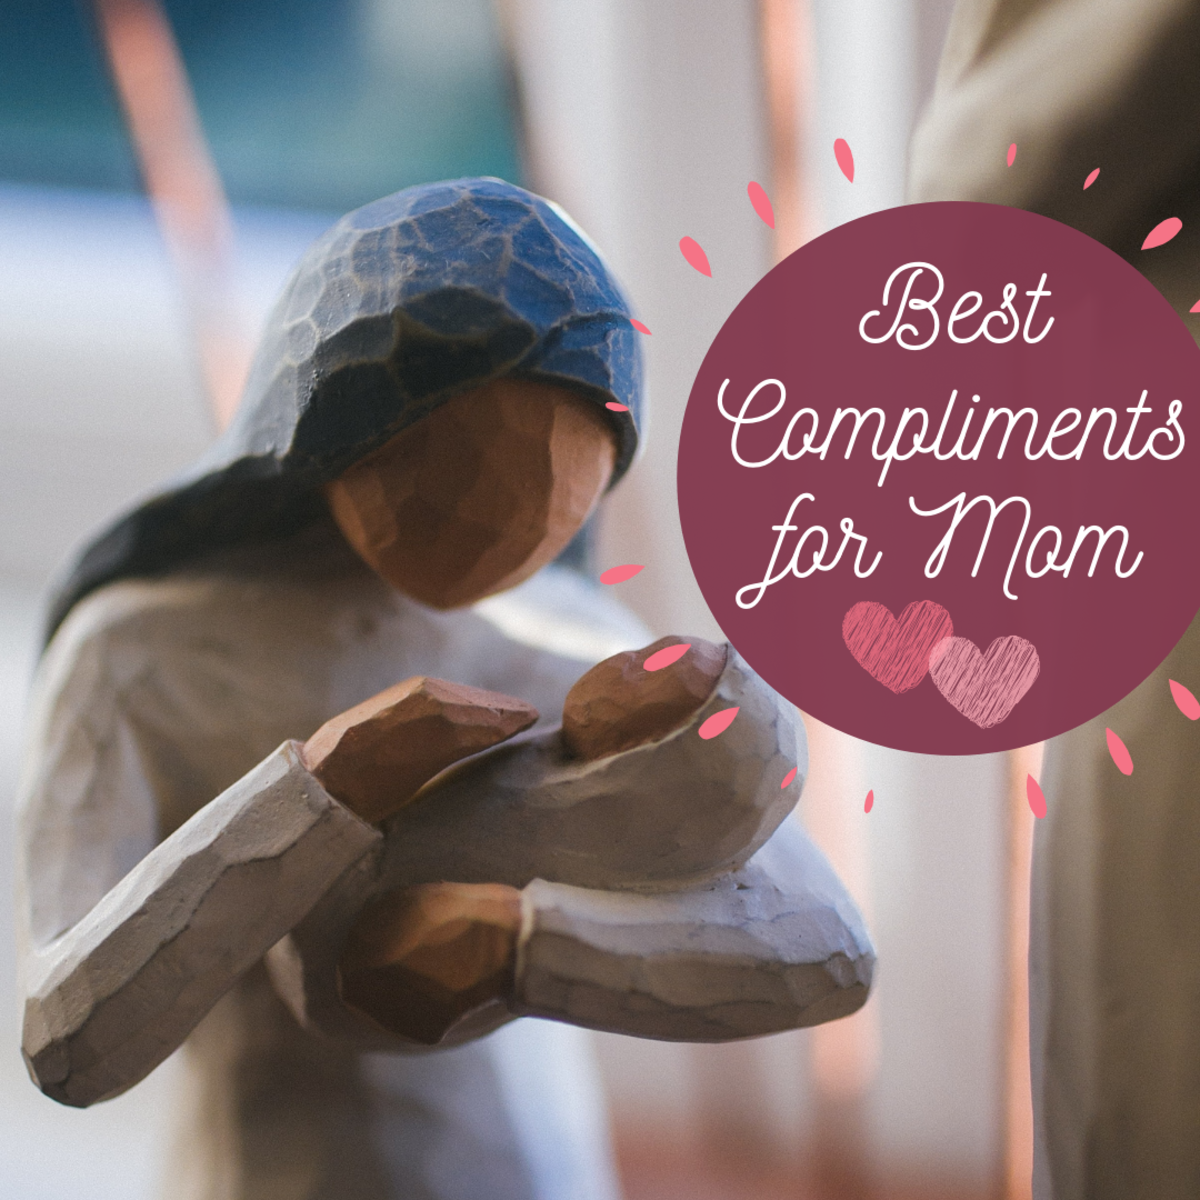 Get more than 100 ideas for the best, sweetest, nicest, kindest, and most creative things you can say to let your mom know how much you appreciate her.